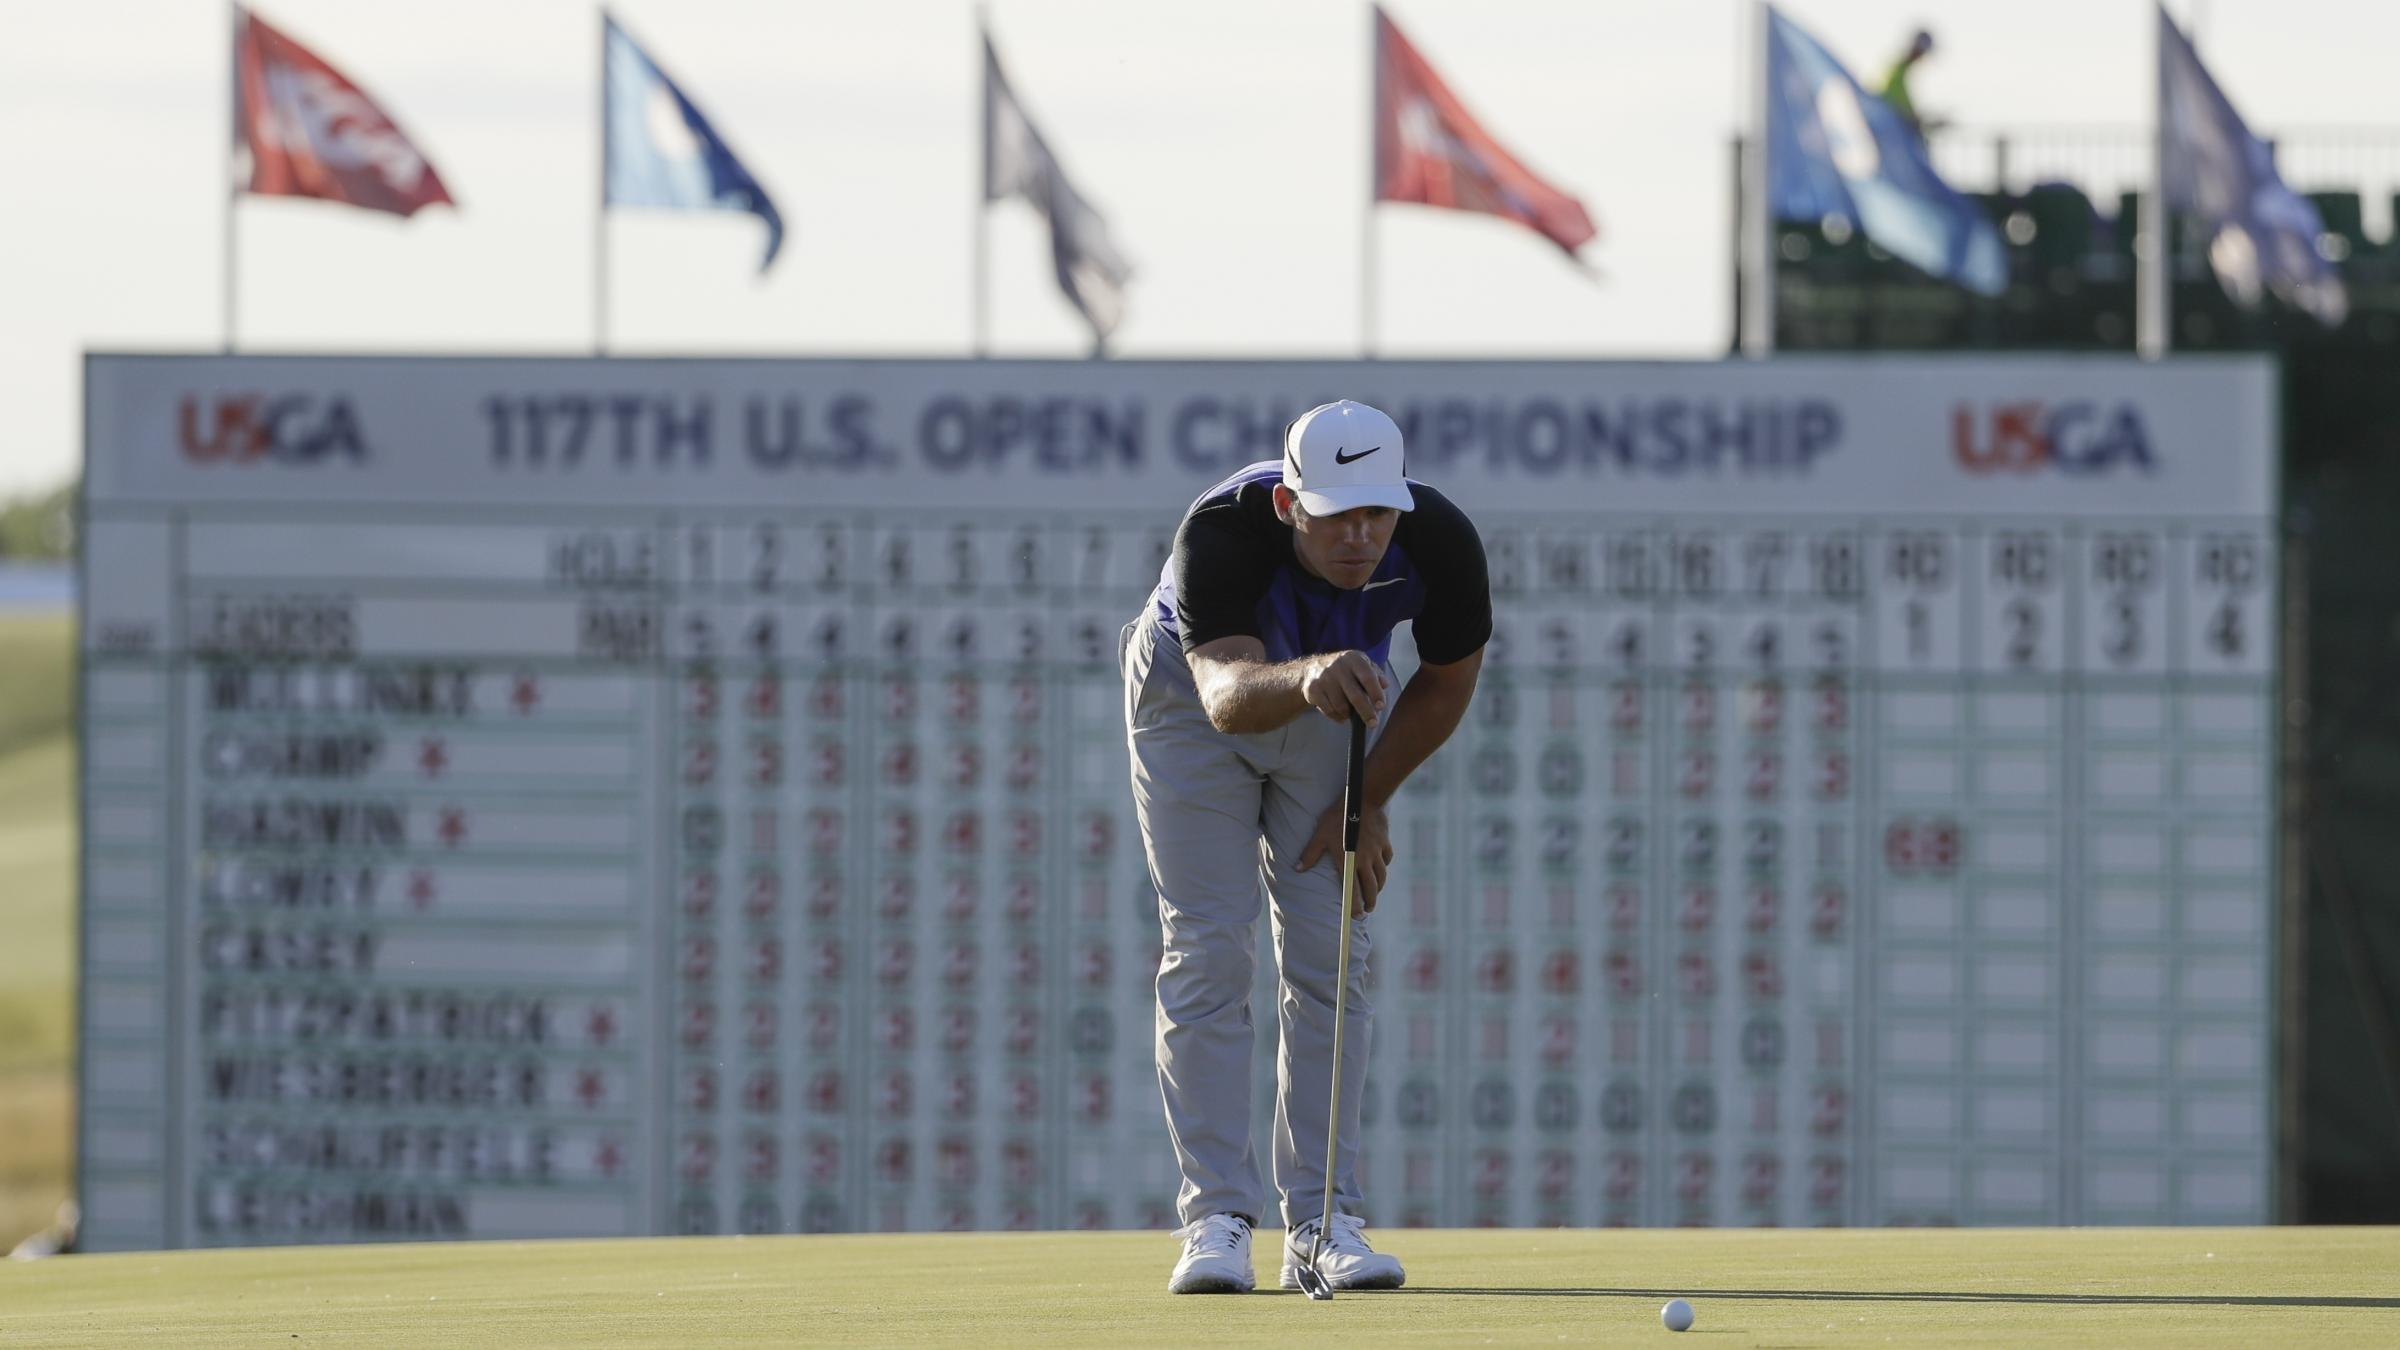 Crowded US Open leaderboard but world top three miss cut